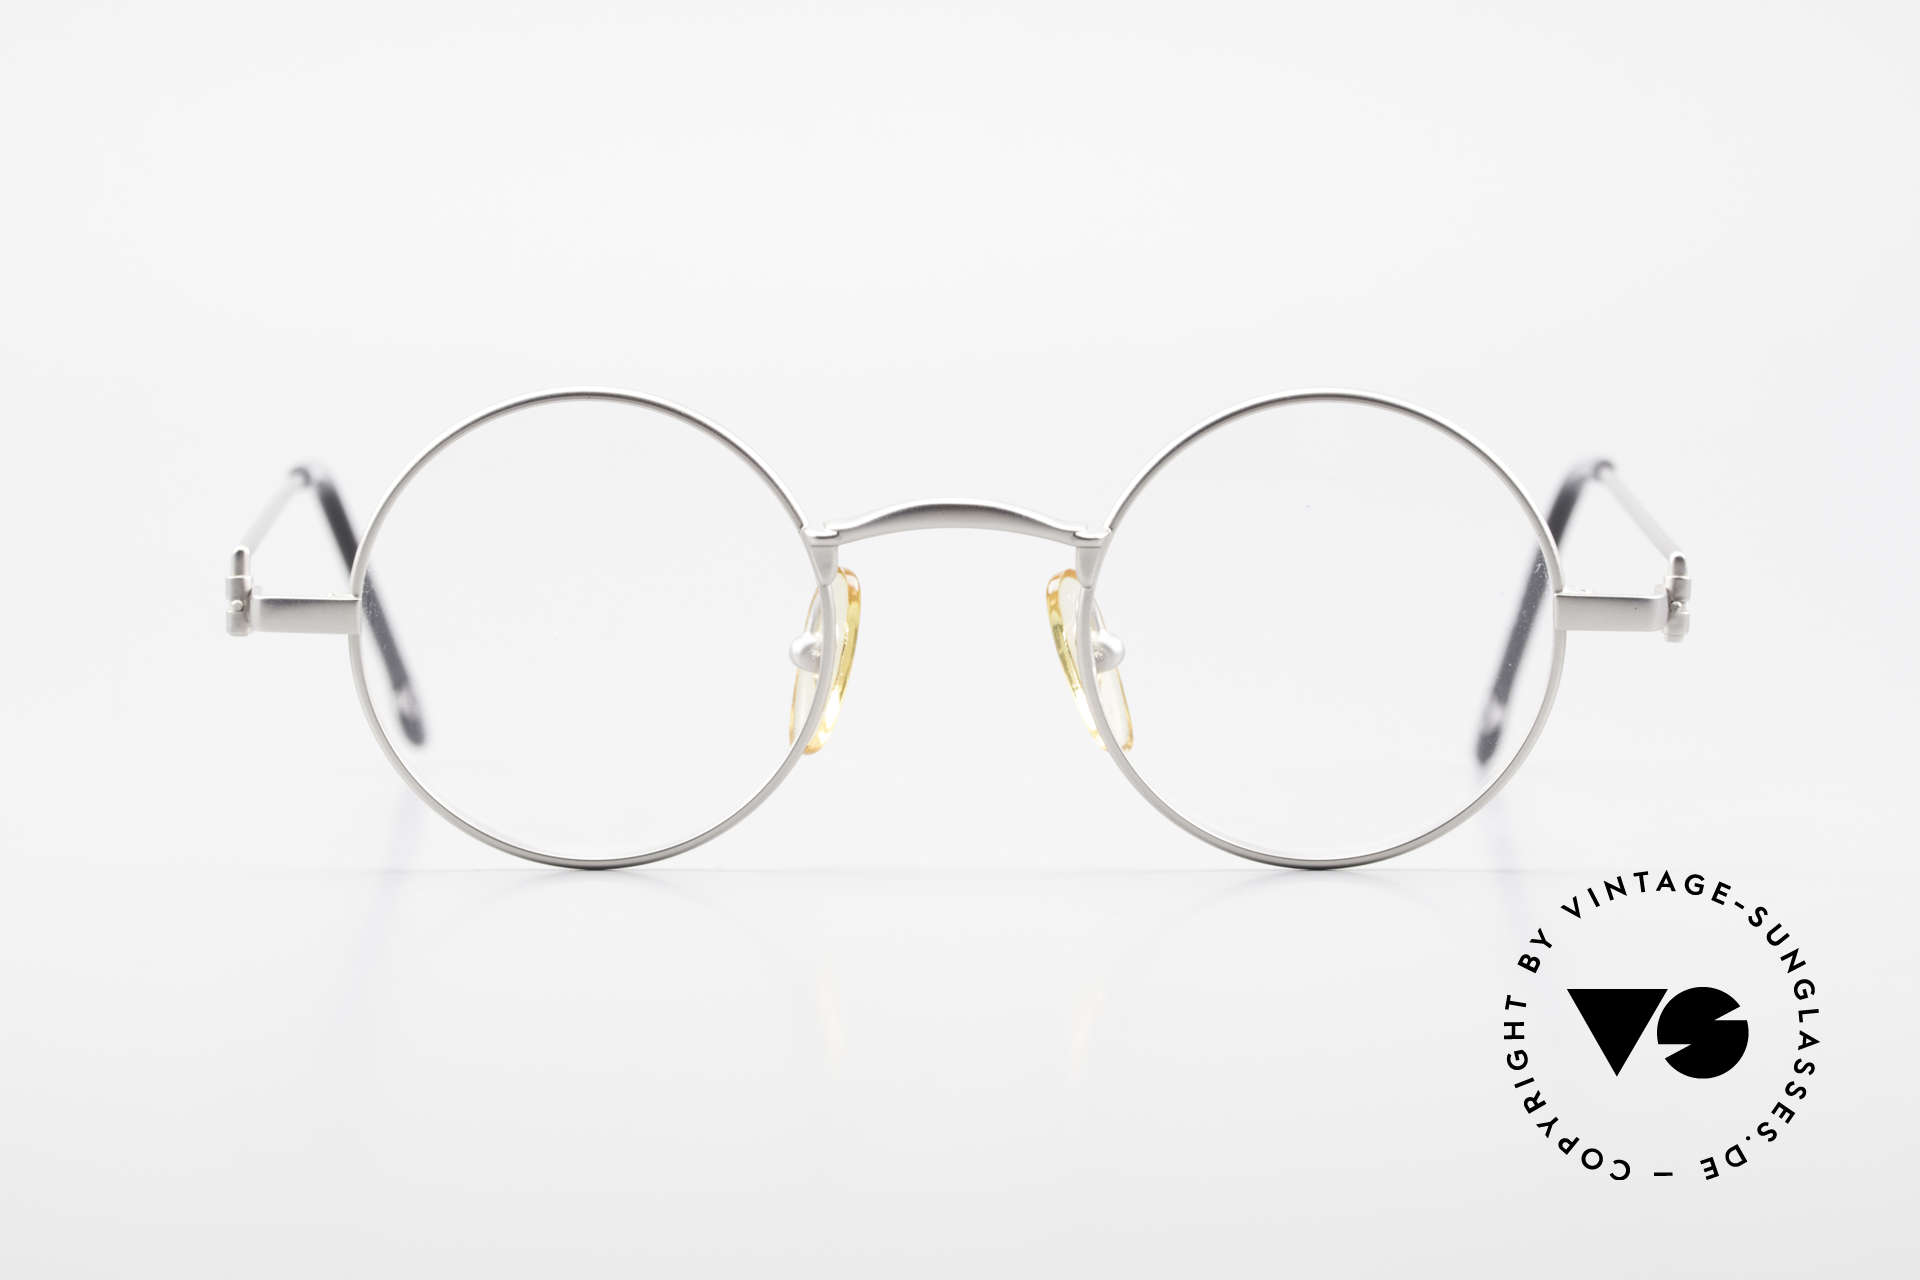 W Proksch's M30/8 Round Glasses 90s Avantgarde, back then, produced by Wolfgang Proksch himself, Made for Men